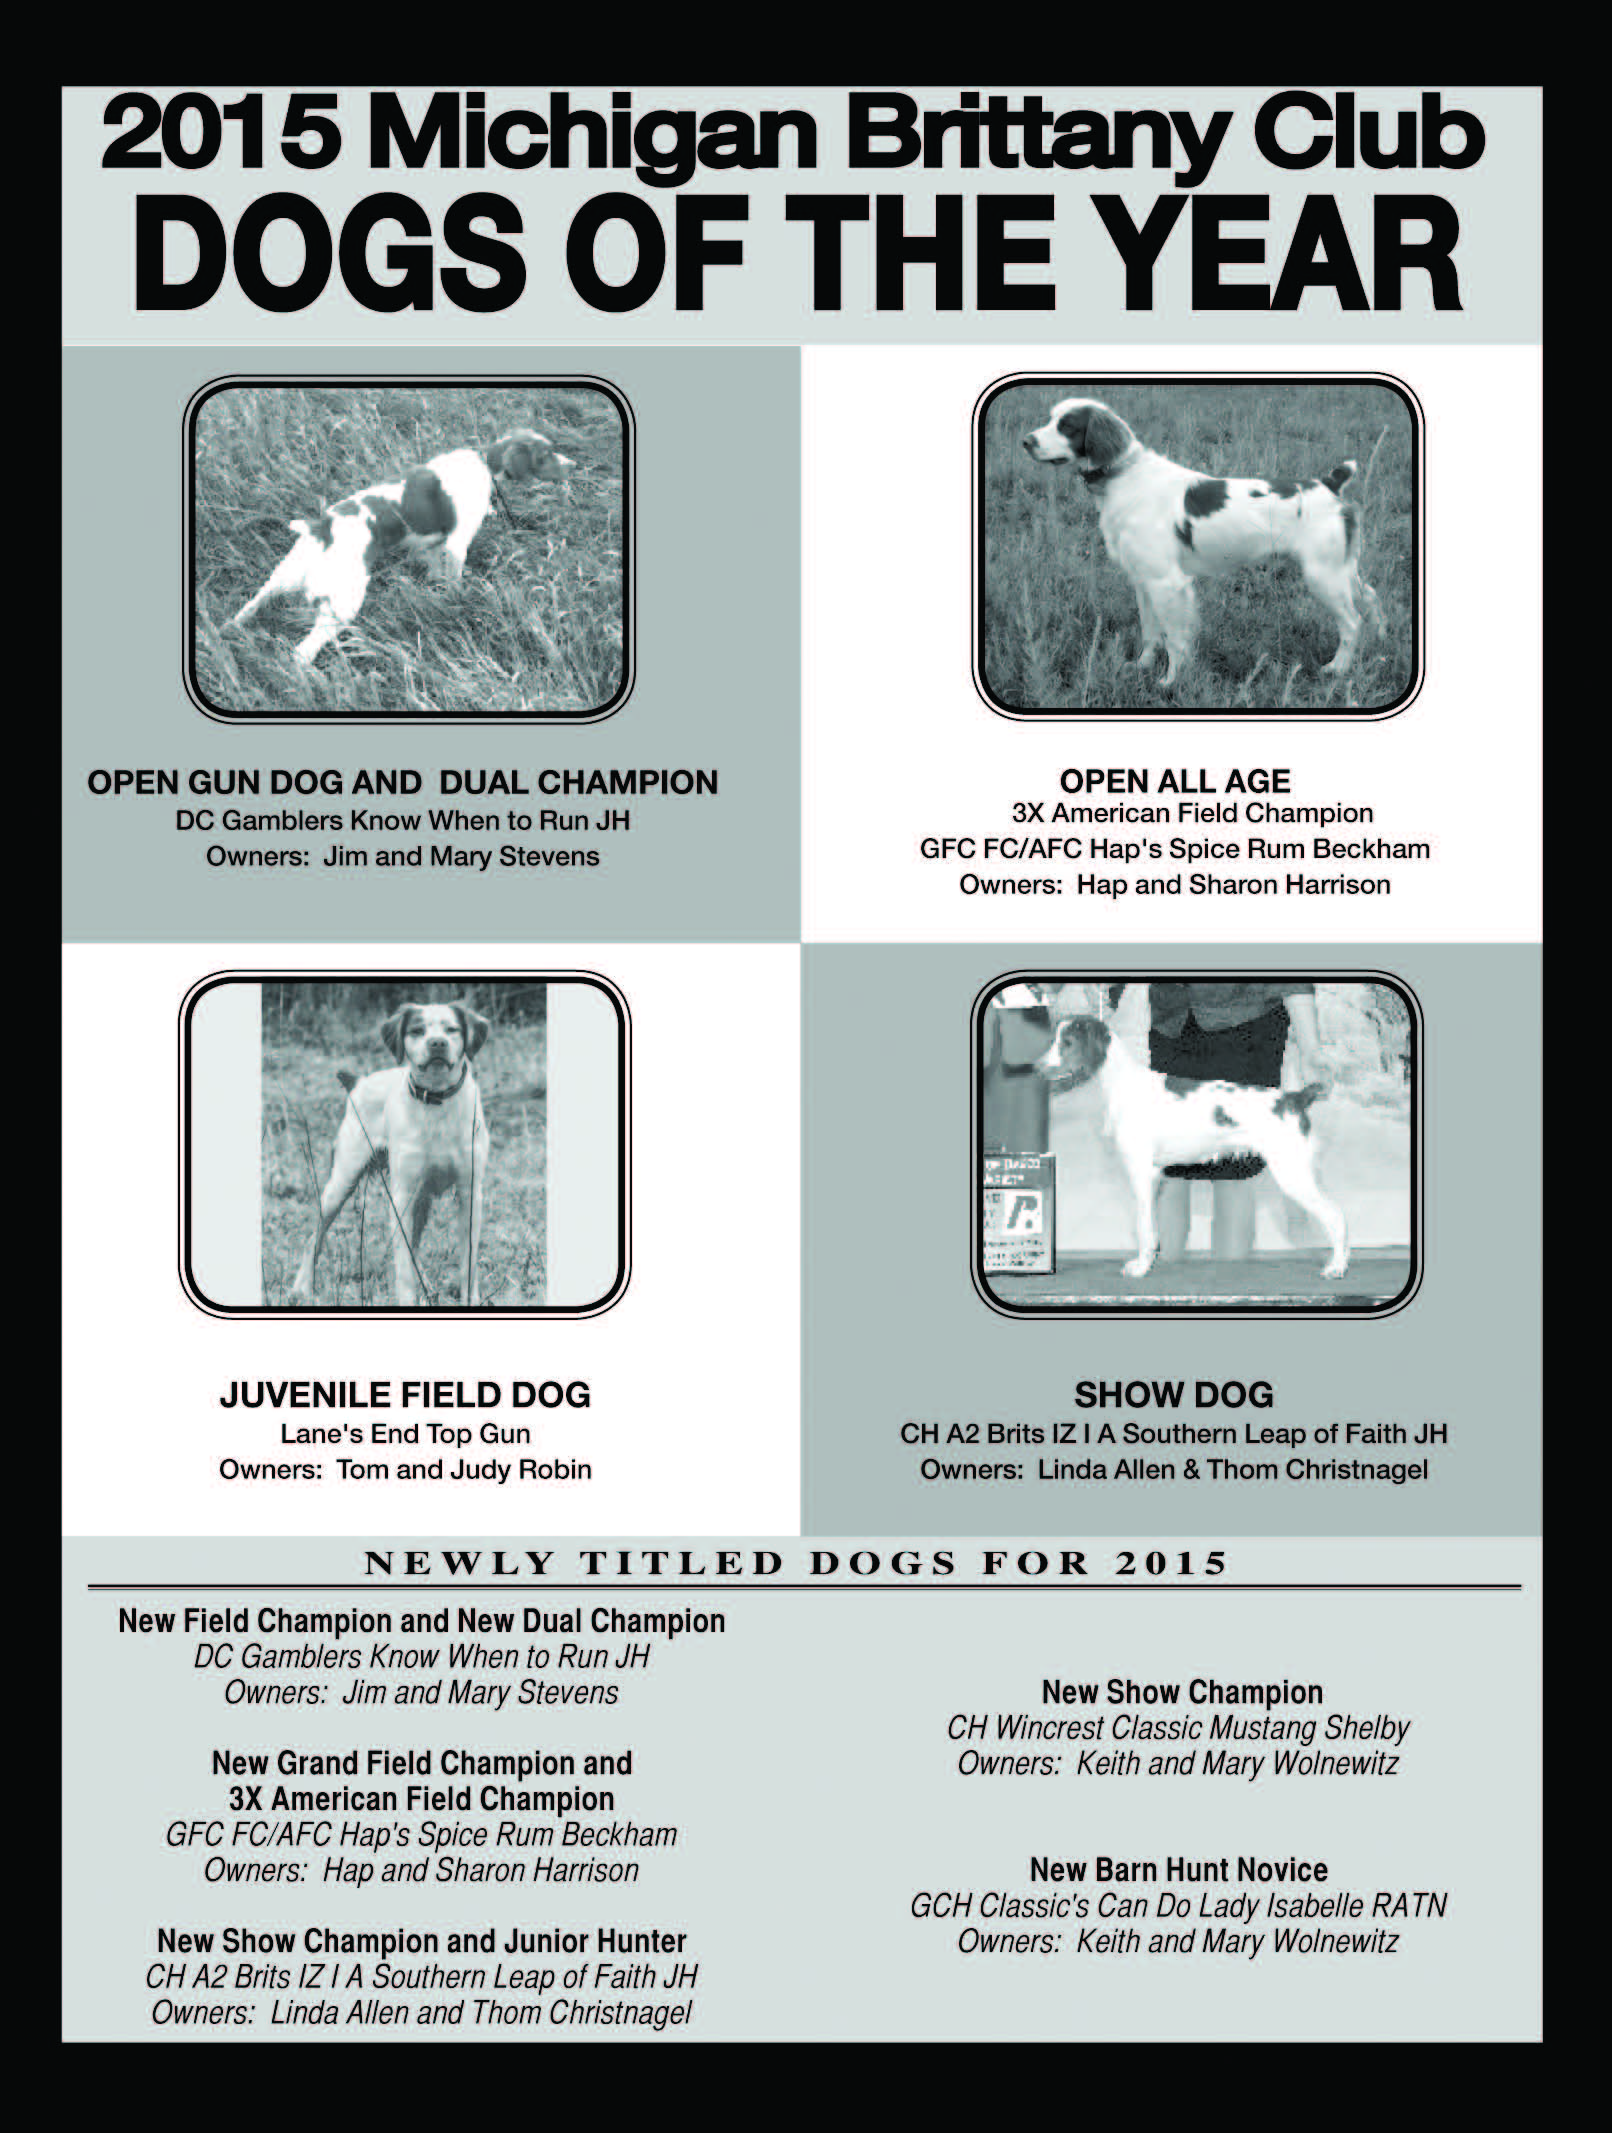 MBC Dogs of the Year 2015